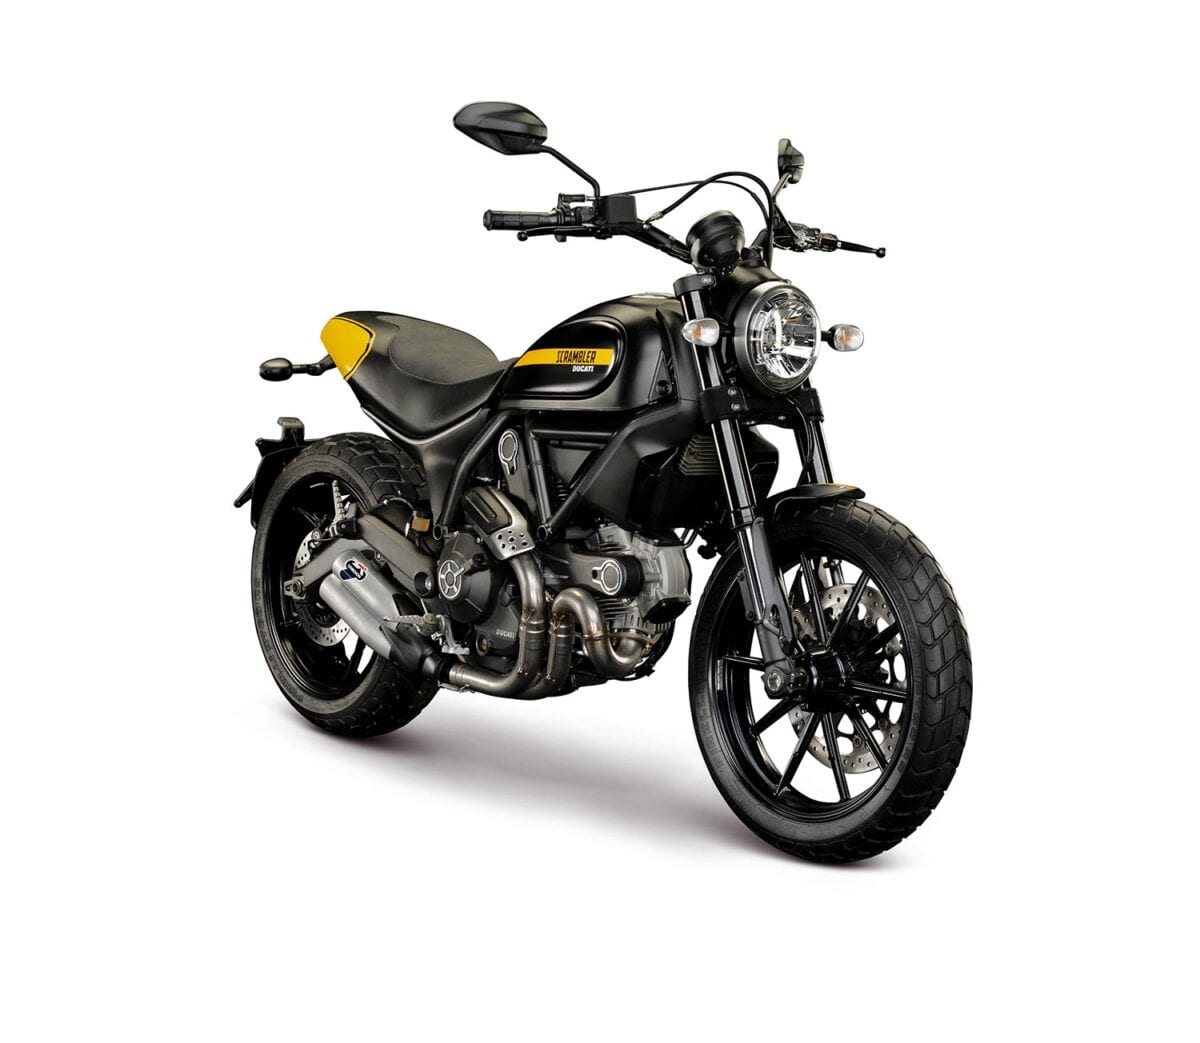 Ducati-Scrambler_FULL-THROTTLE-Front-qtr